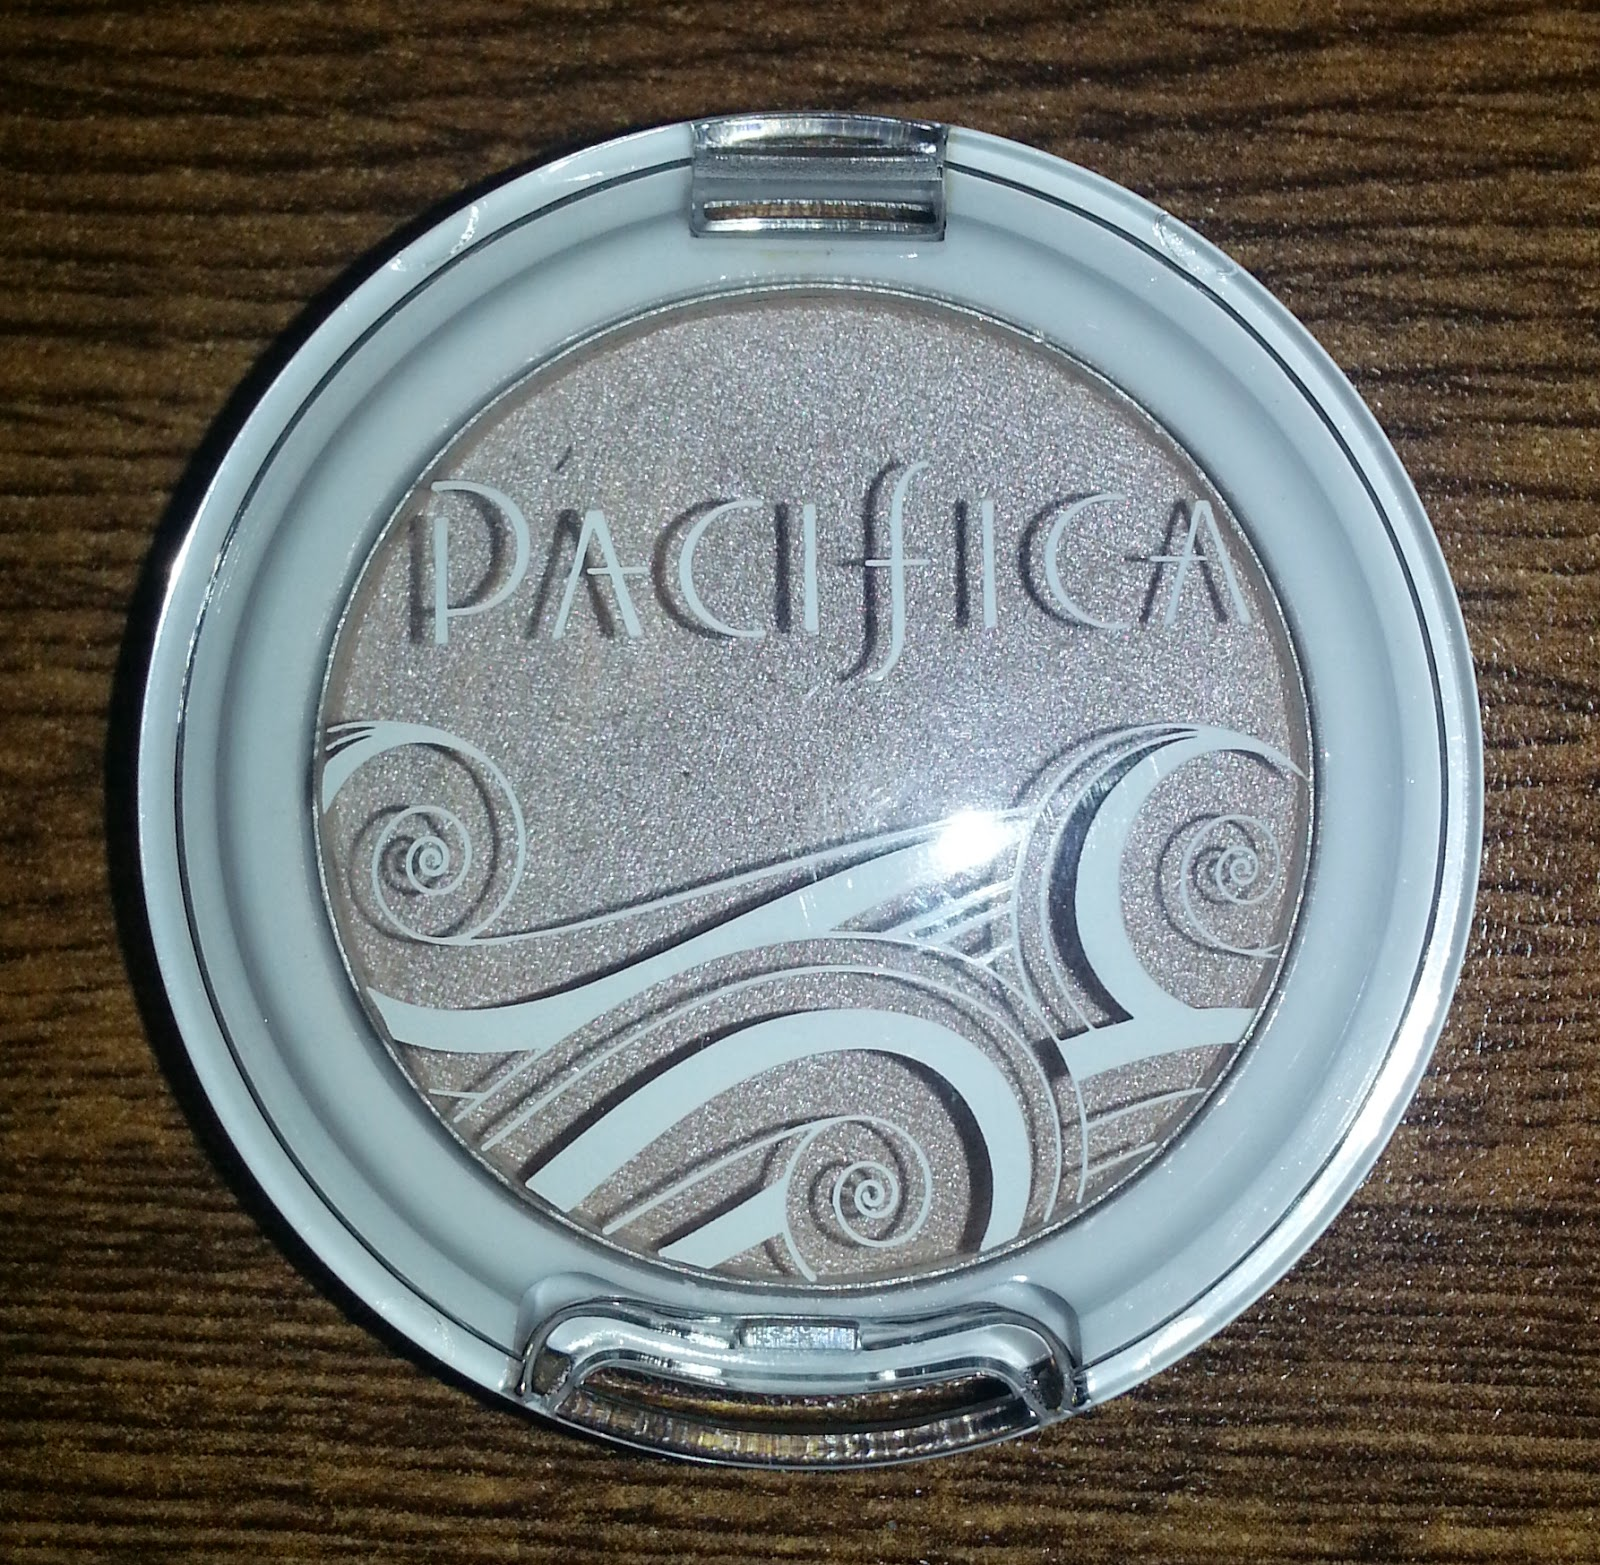 Pacifica Natural Mineral Coconut Eye Shadow in Ethereal